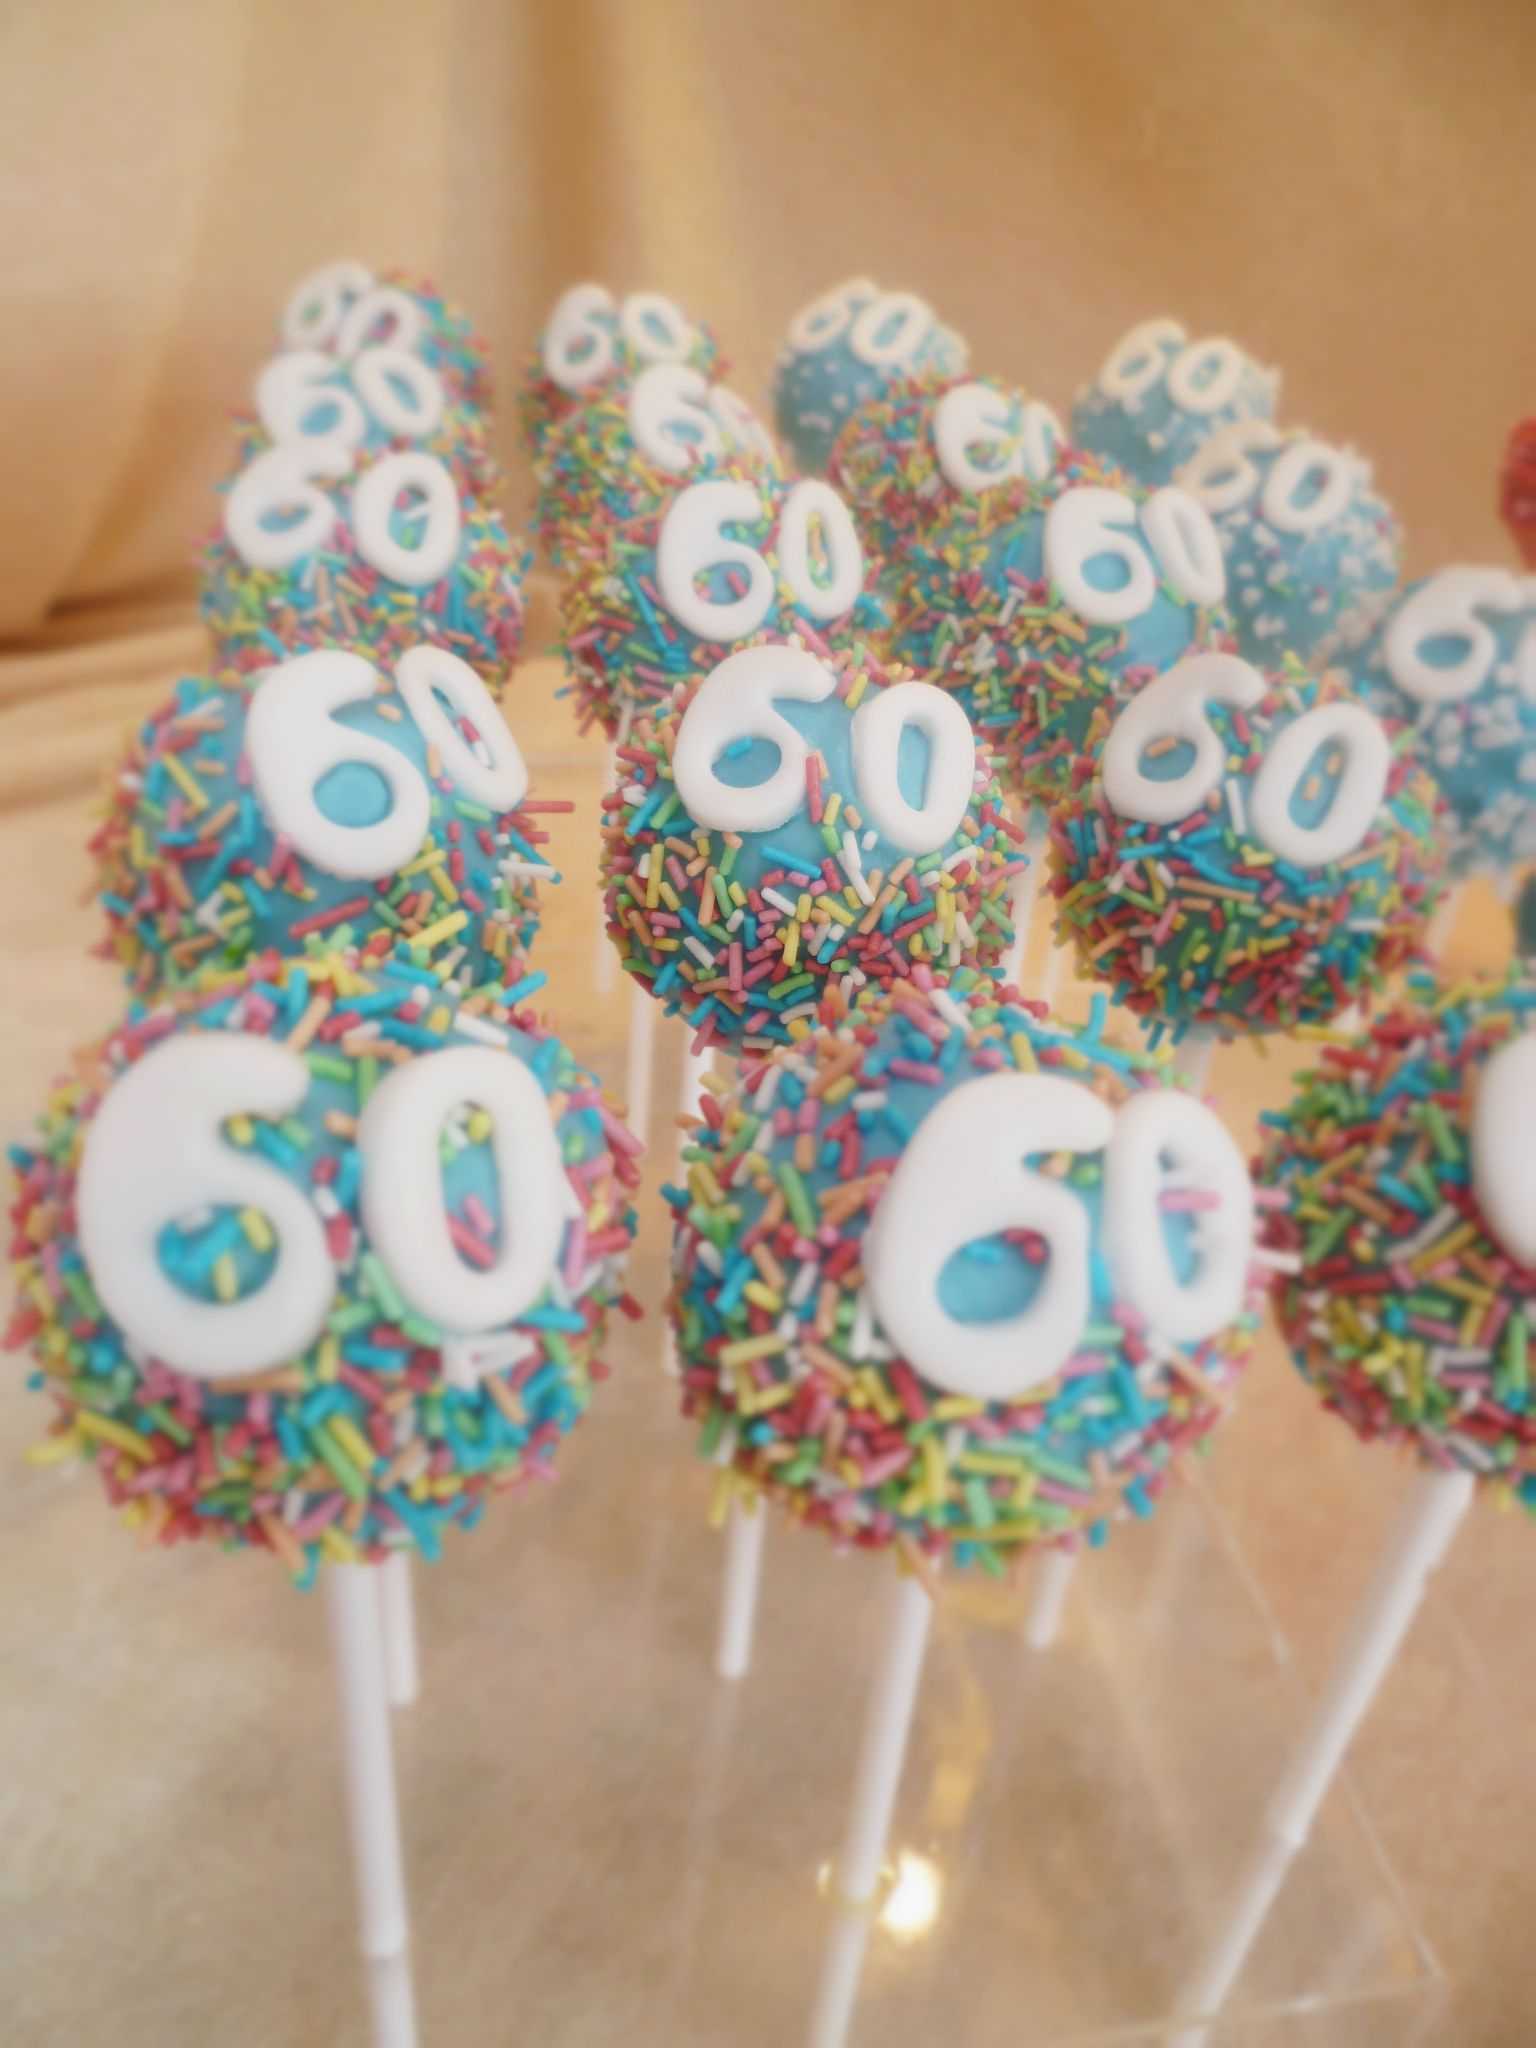 Birthday Cake Pops 60th Birthday Cake Pops Make That Birthday A Bit More Special Check